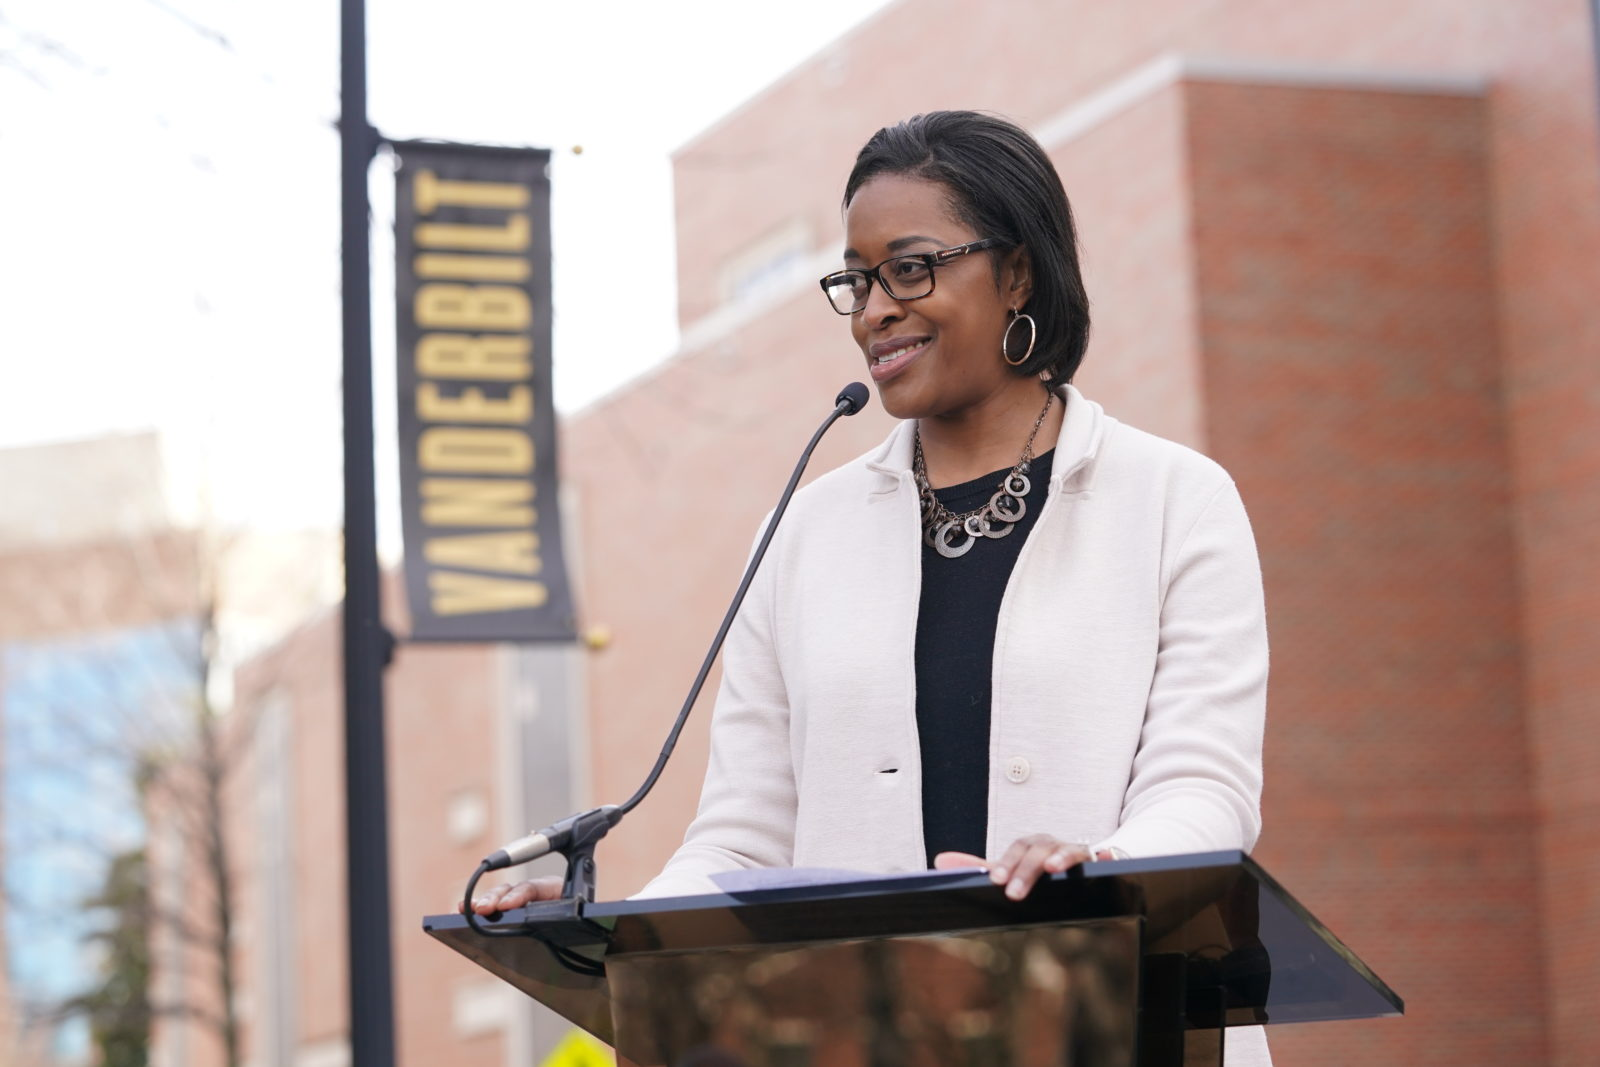 Interim Vice Chancellor for Athletics and University Affairs and Interim Athletic Director Candice Lee speaking at the dedication ceremony on Saturday, February 22. (John Russell/Vanderbilt)